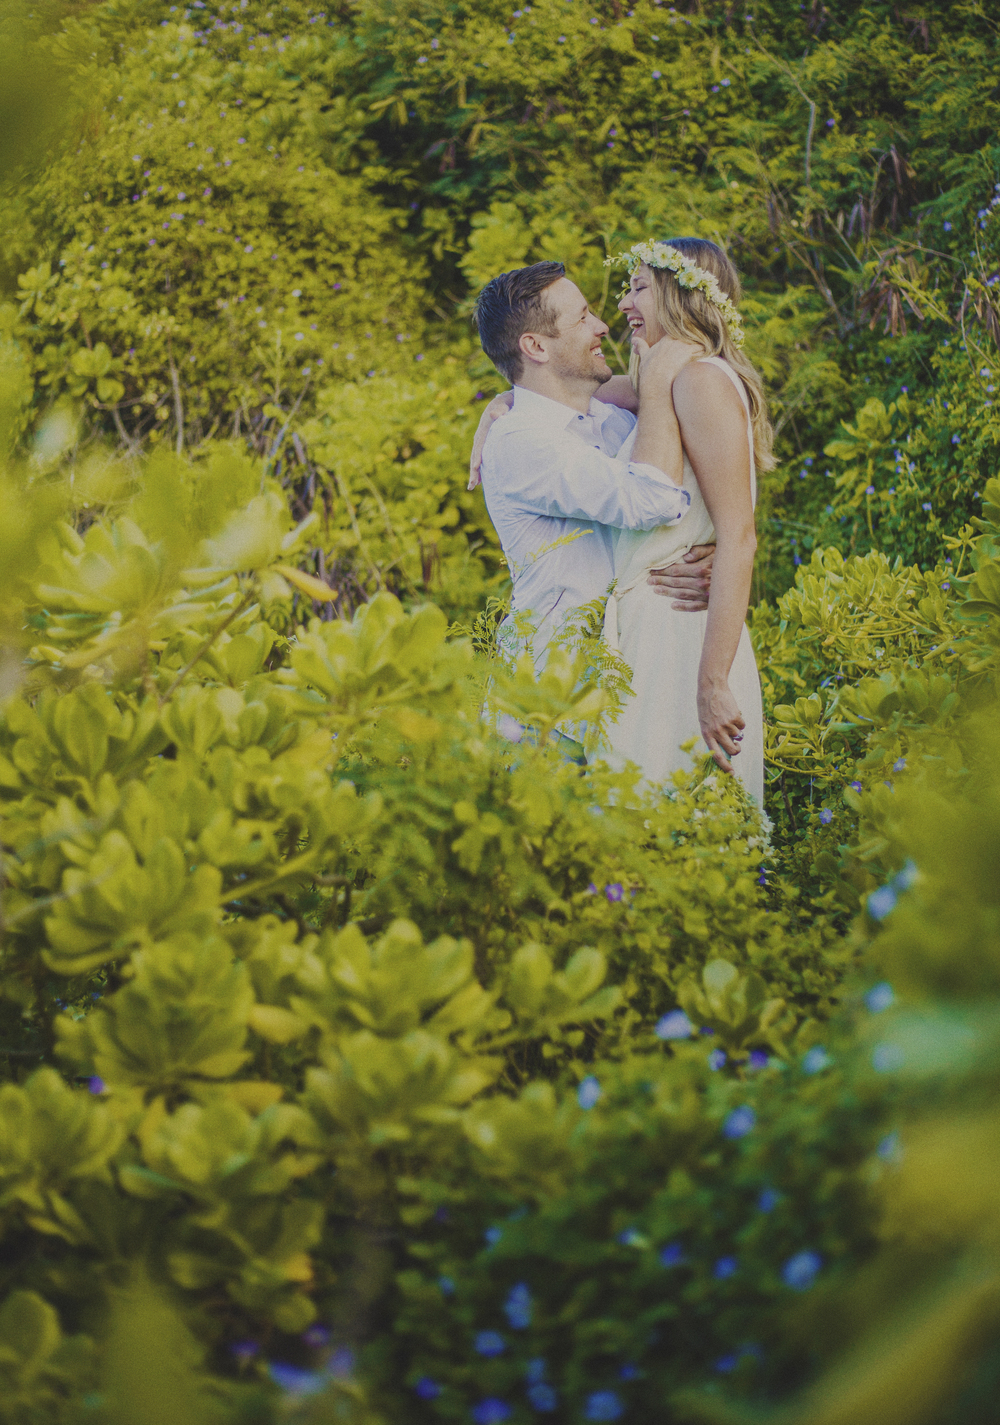 angie-diaz-photography-maui-elopement-oneloa-ironwoods-beach-22.jpg